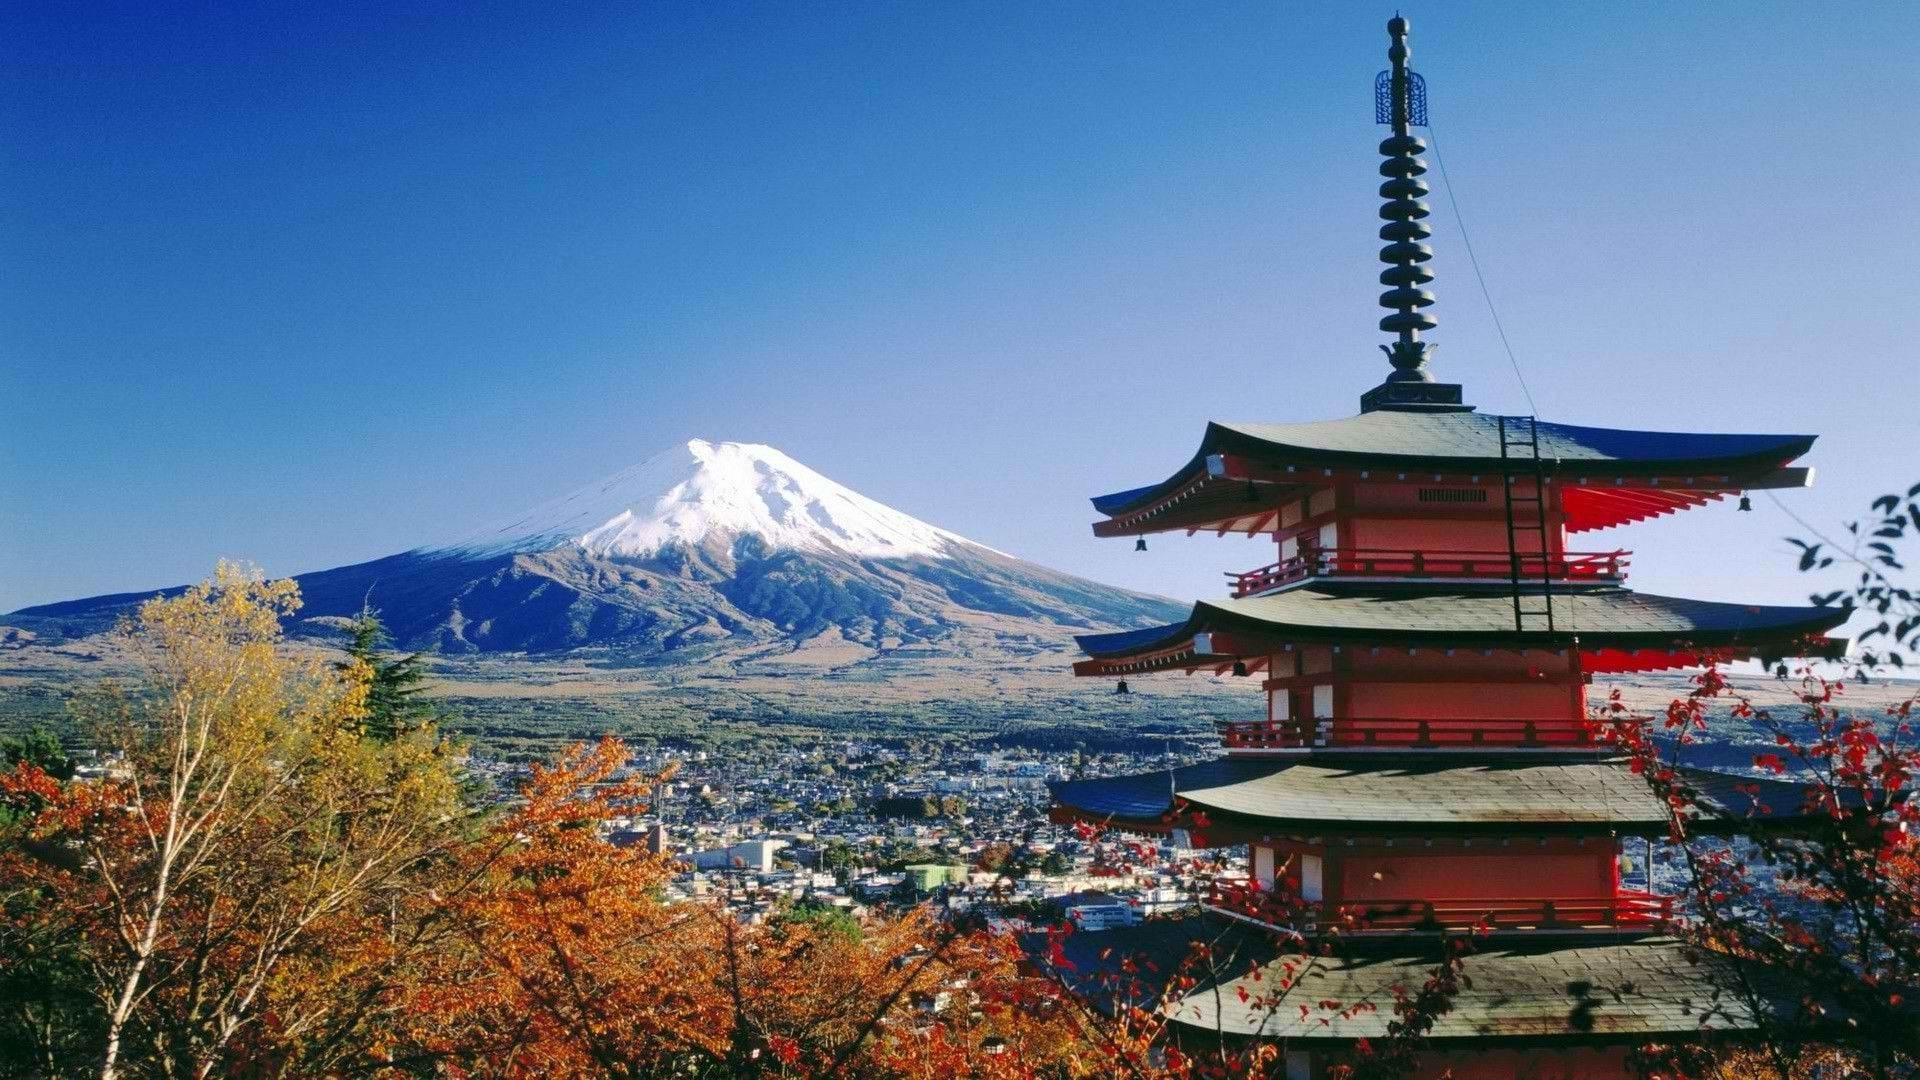 Mt Fuji 4k Wallpapers Top Free Mt Fuji 4k Backgrounds